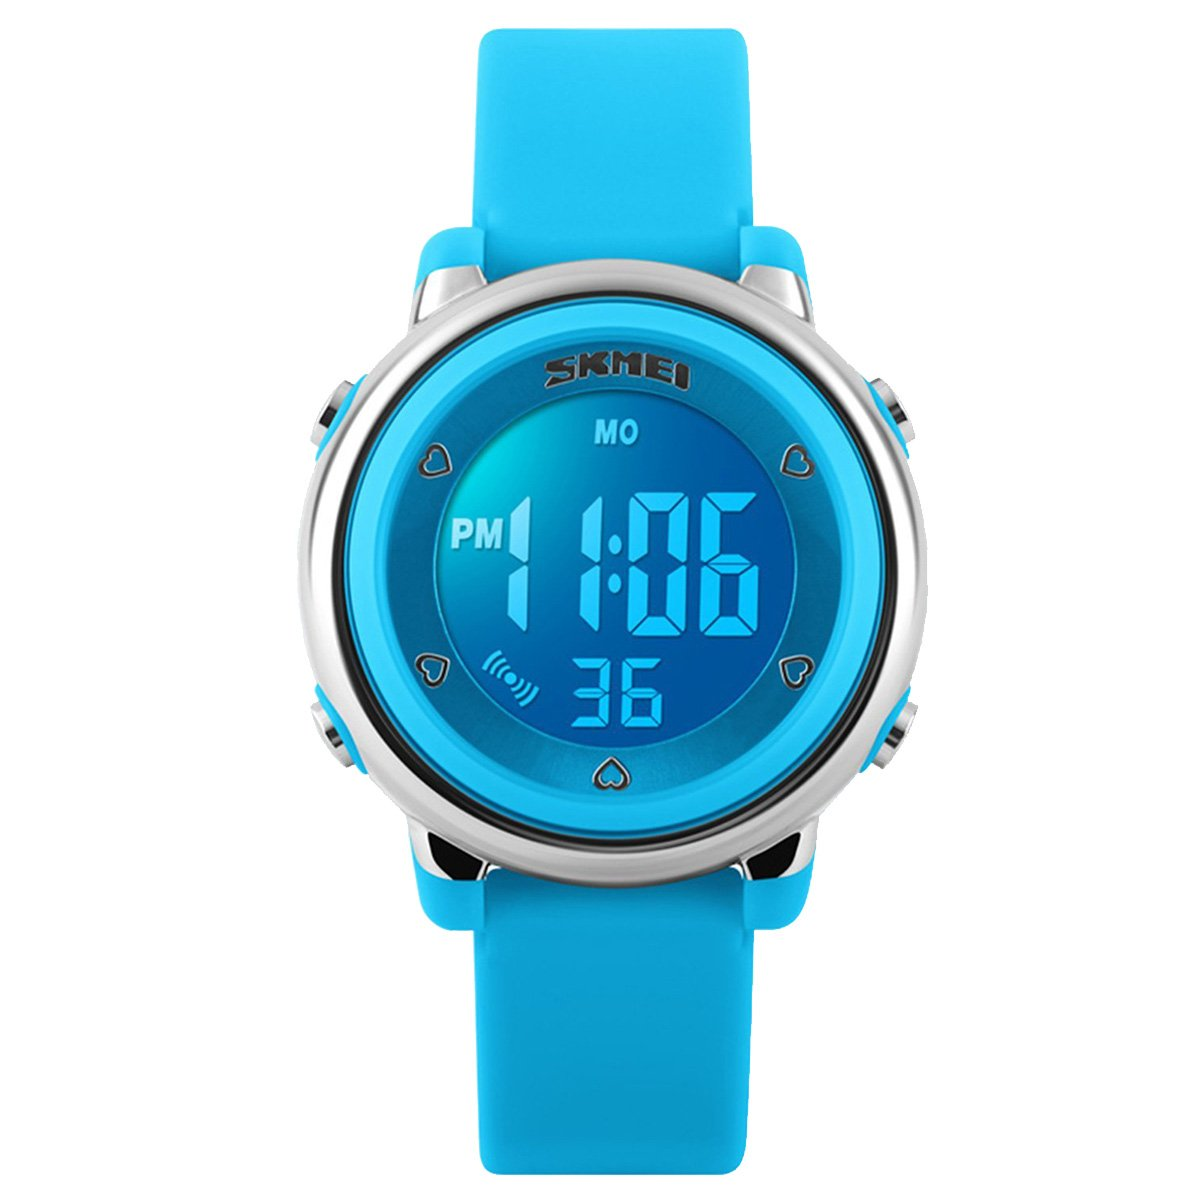 Kids Girls Watches, Outdoor Sports LED Alarm Stopwatch Watches 1100 (Blue)